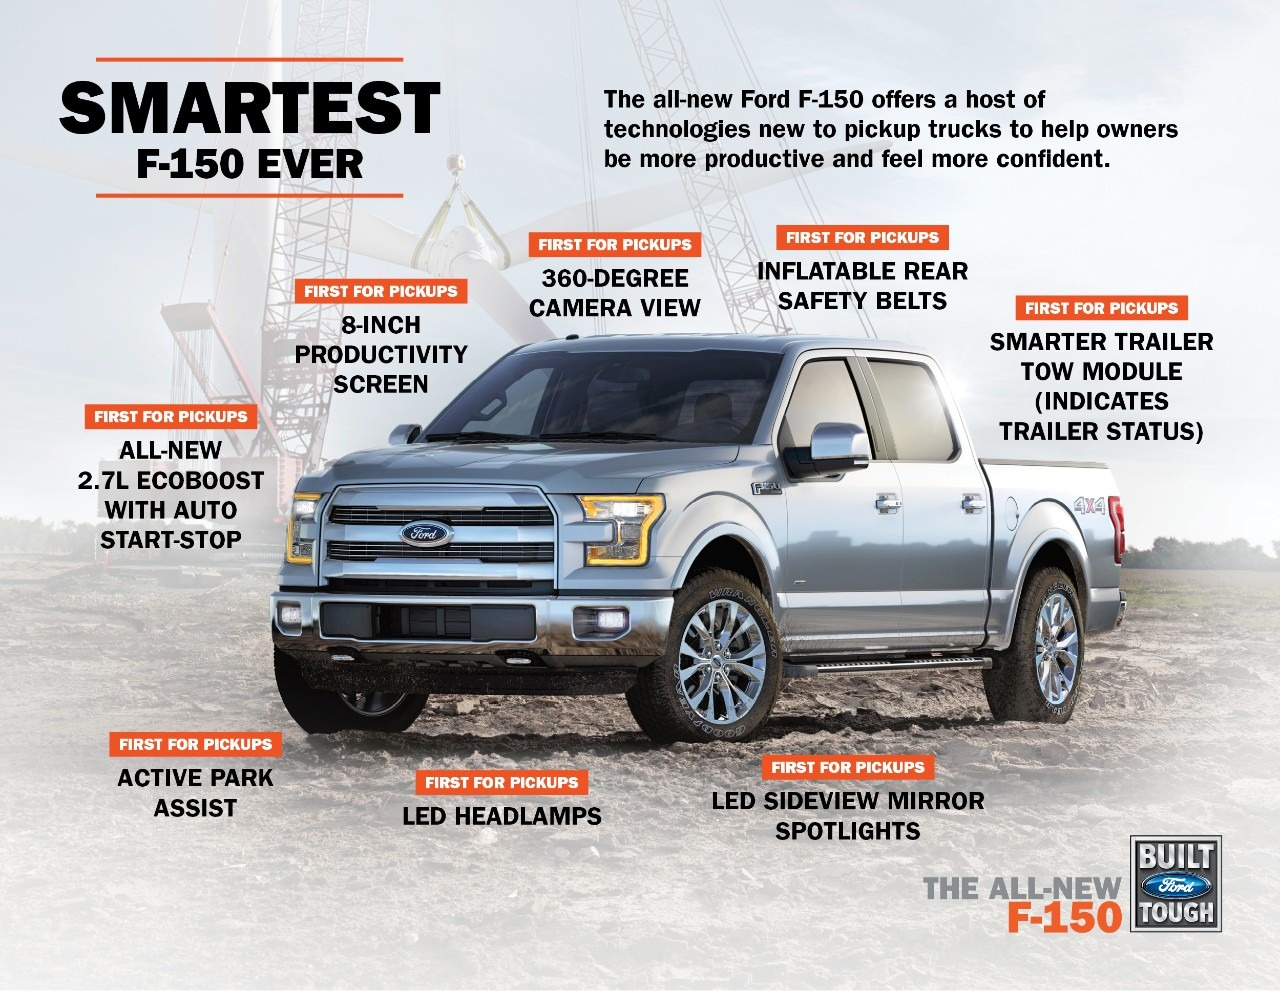 2015 Ford F150 Aluminum Image why smartest f150 ever exterior-r01-1